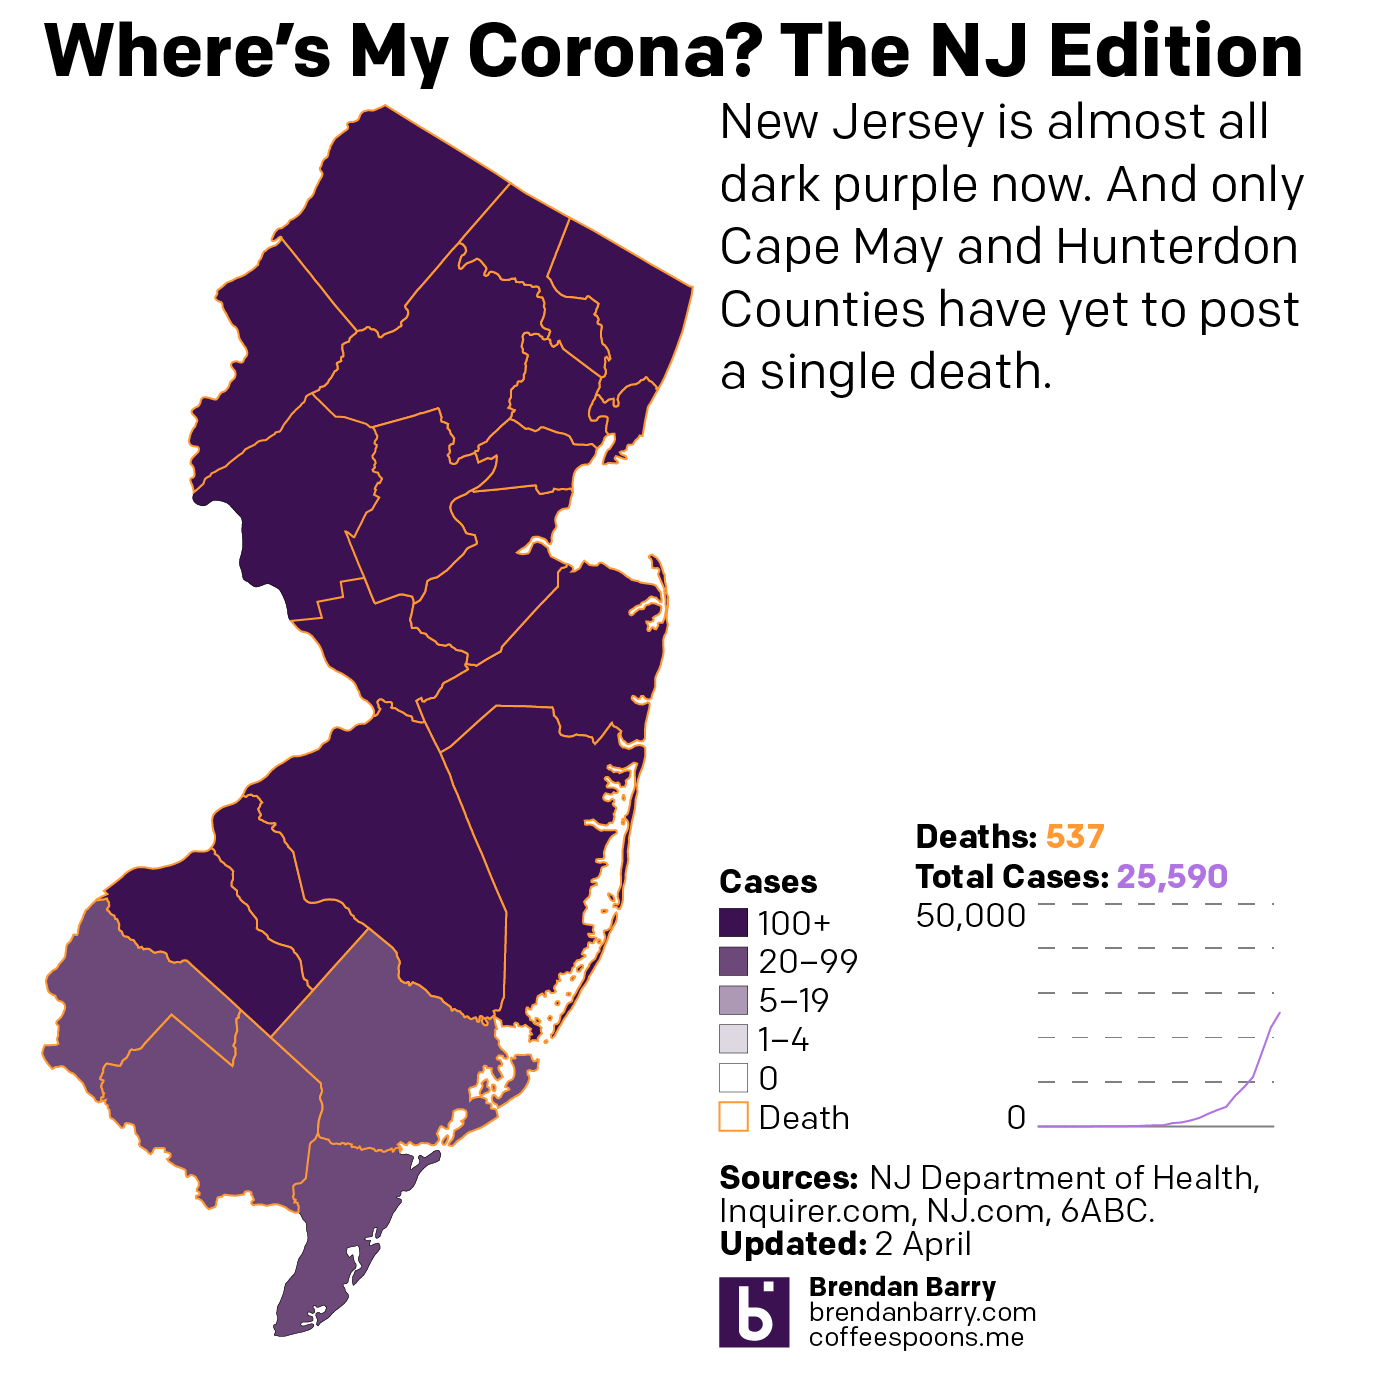 Conditions in New Jersey